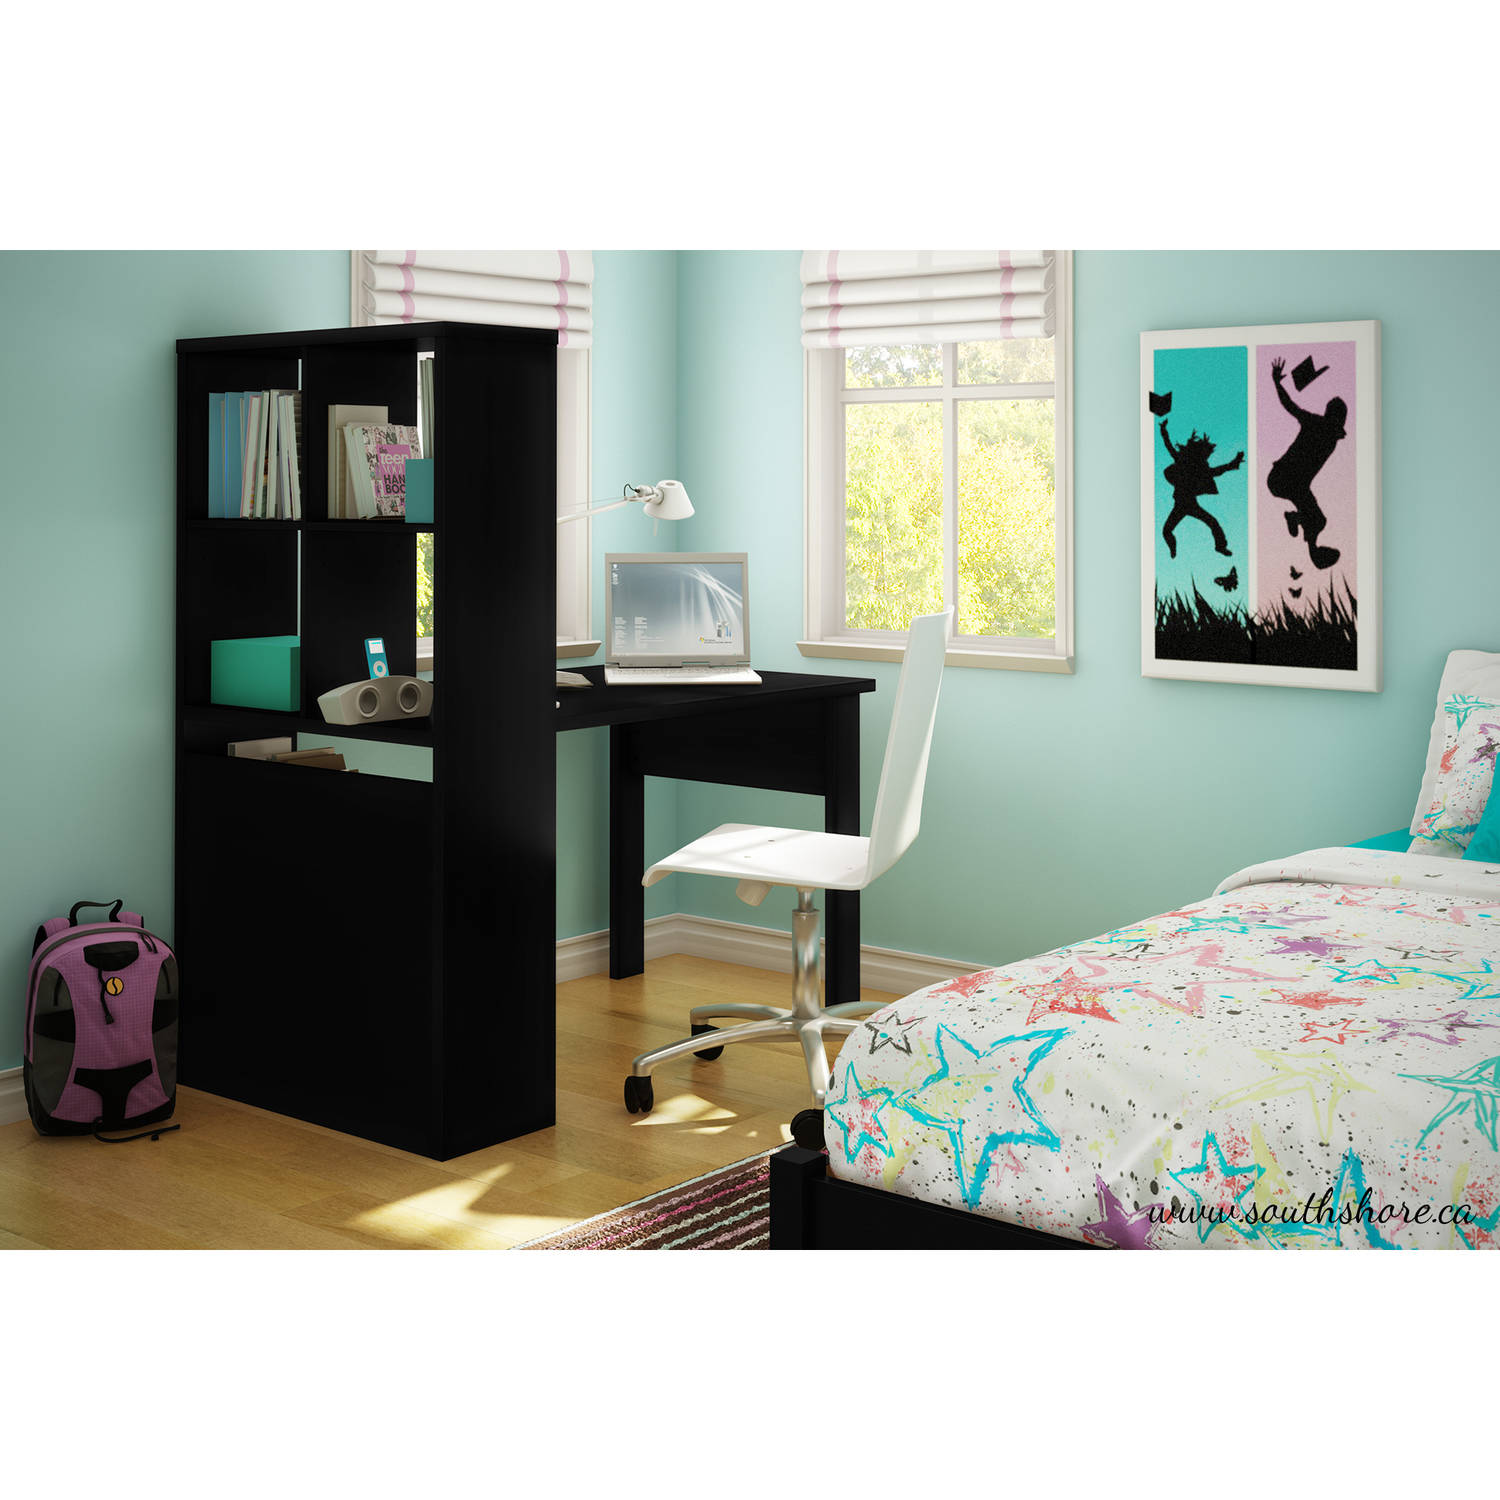 South Shore Annexe Work Table And Storage Unit Combo, Multiple Finishes    Walmart.com